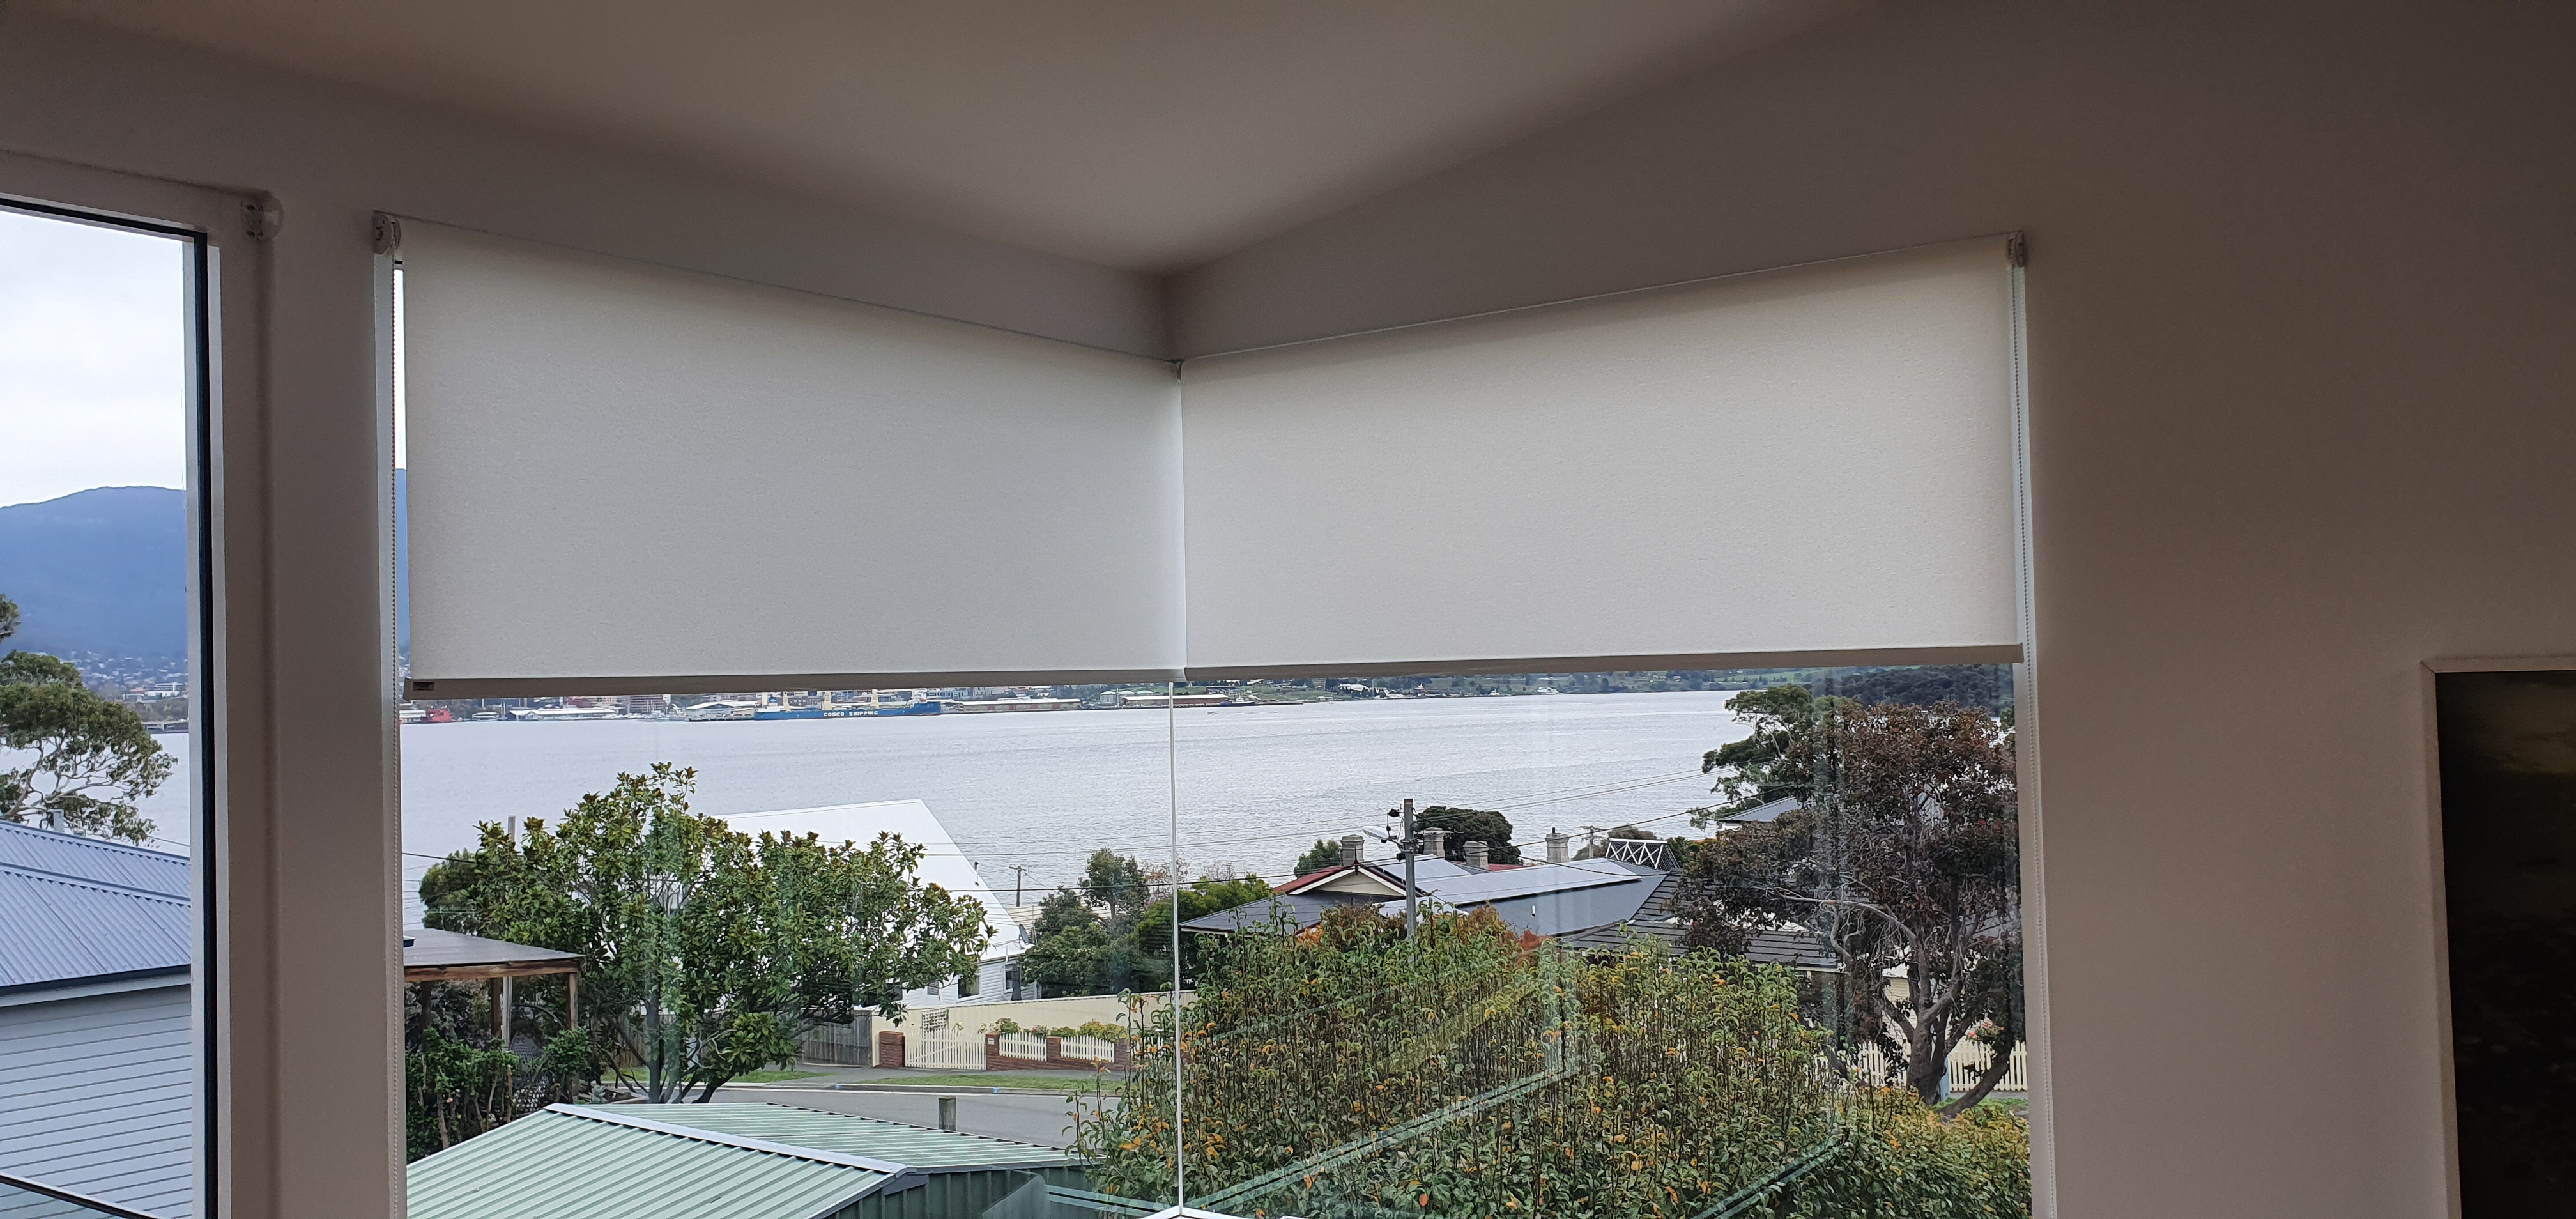 Translucent roller blinds on corner window